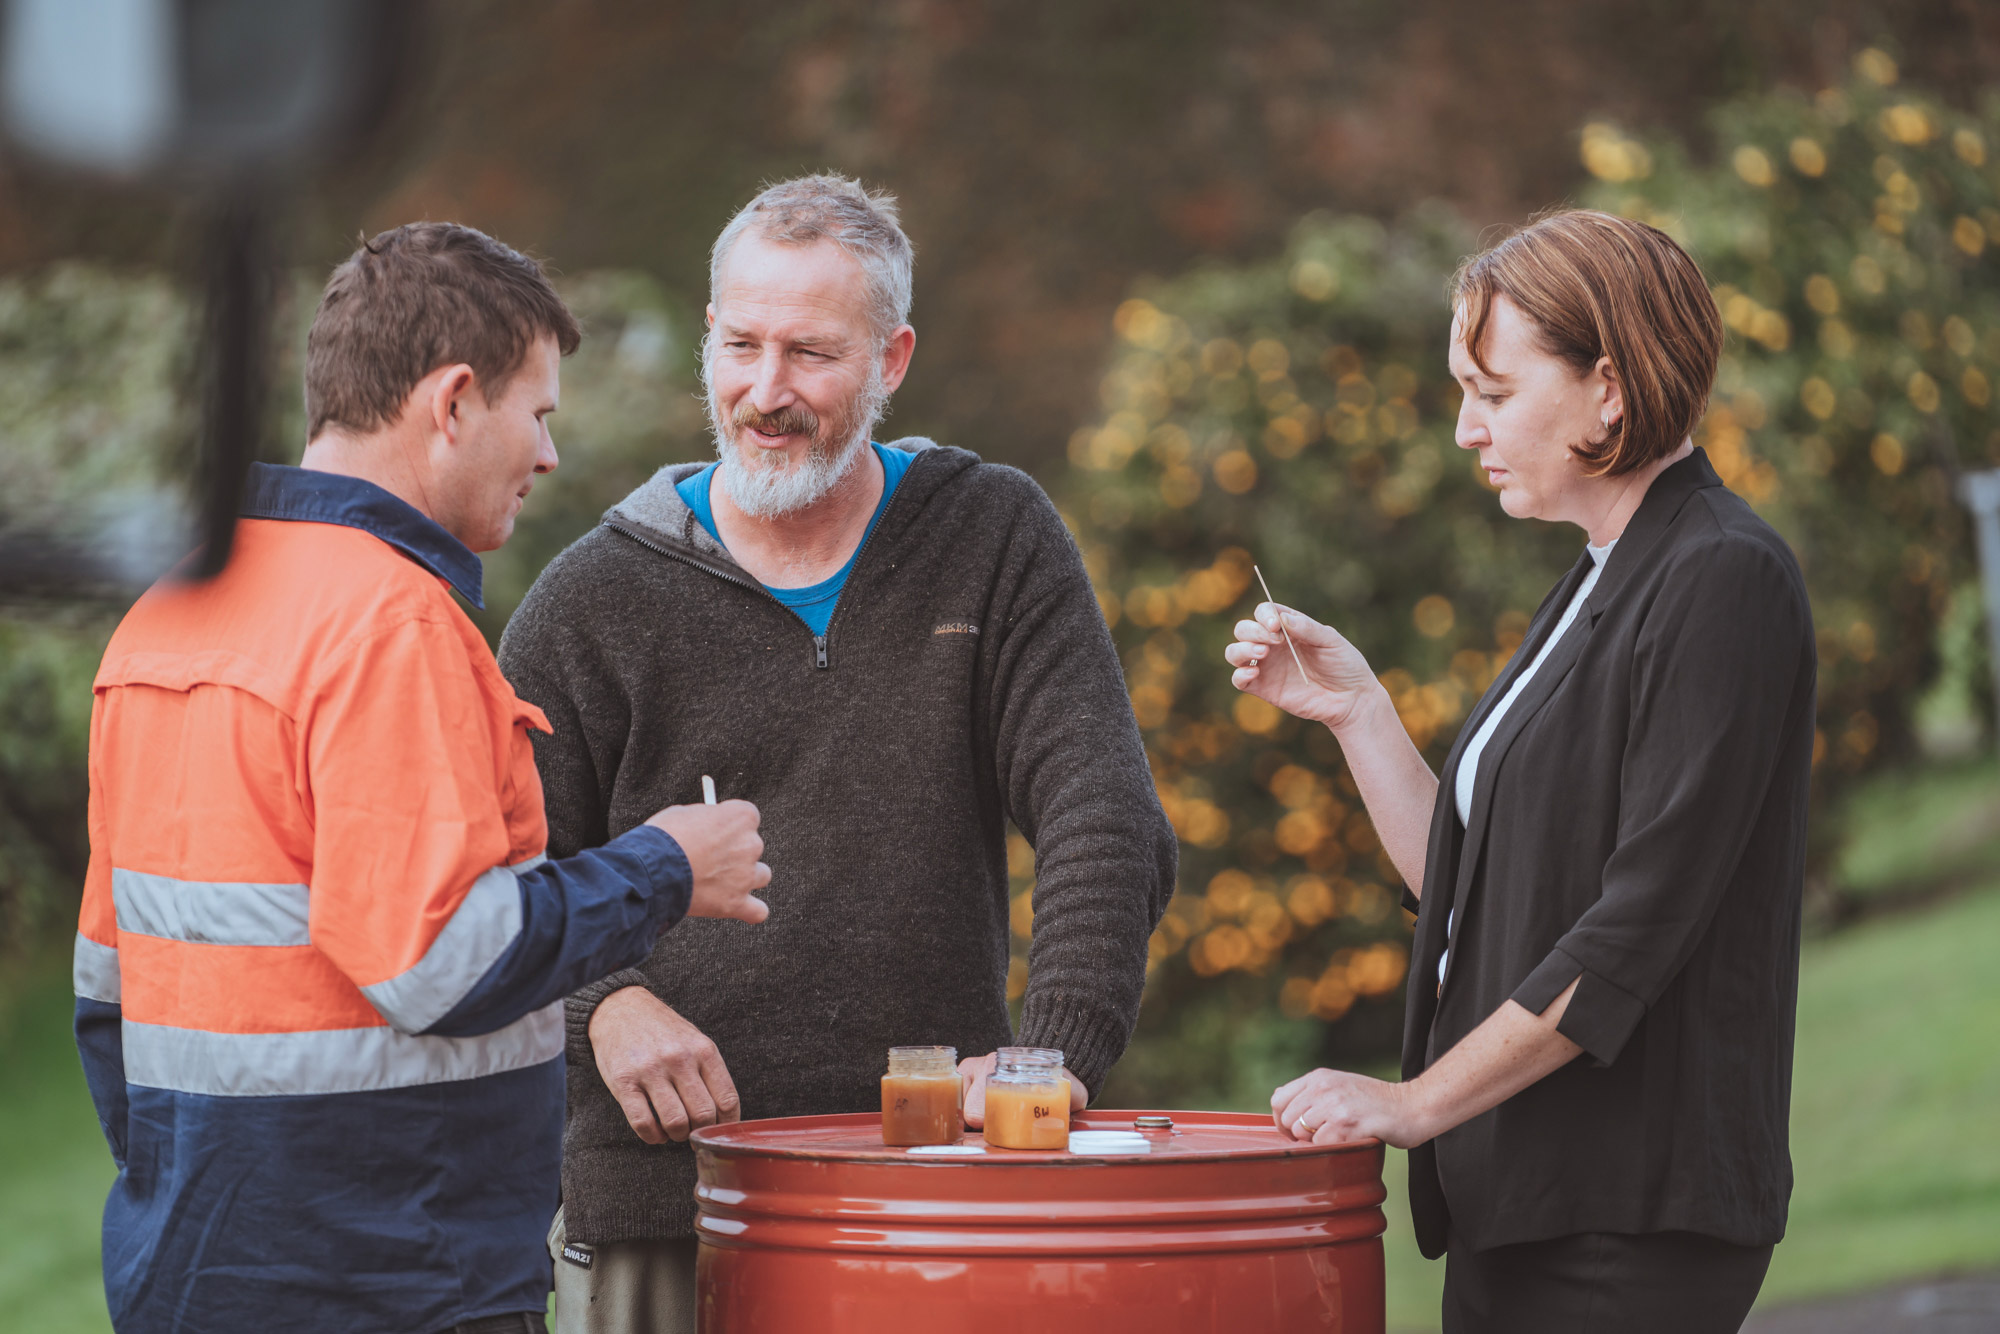 Manuka Orchards | Cab Creative